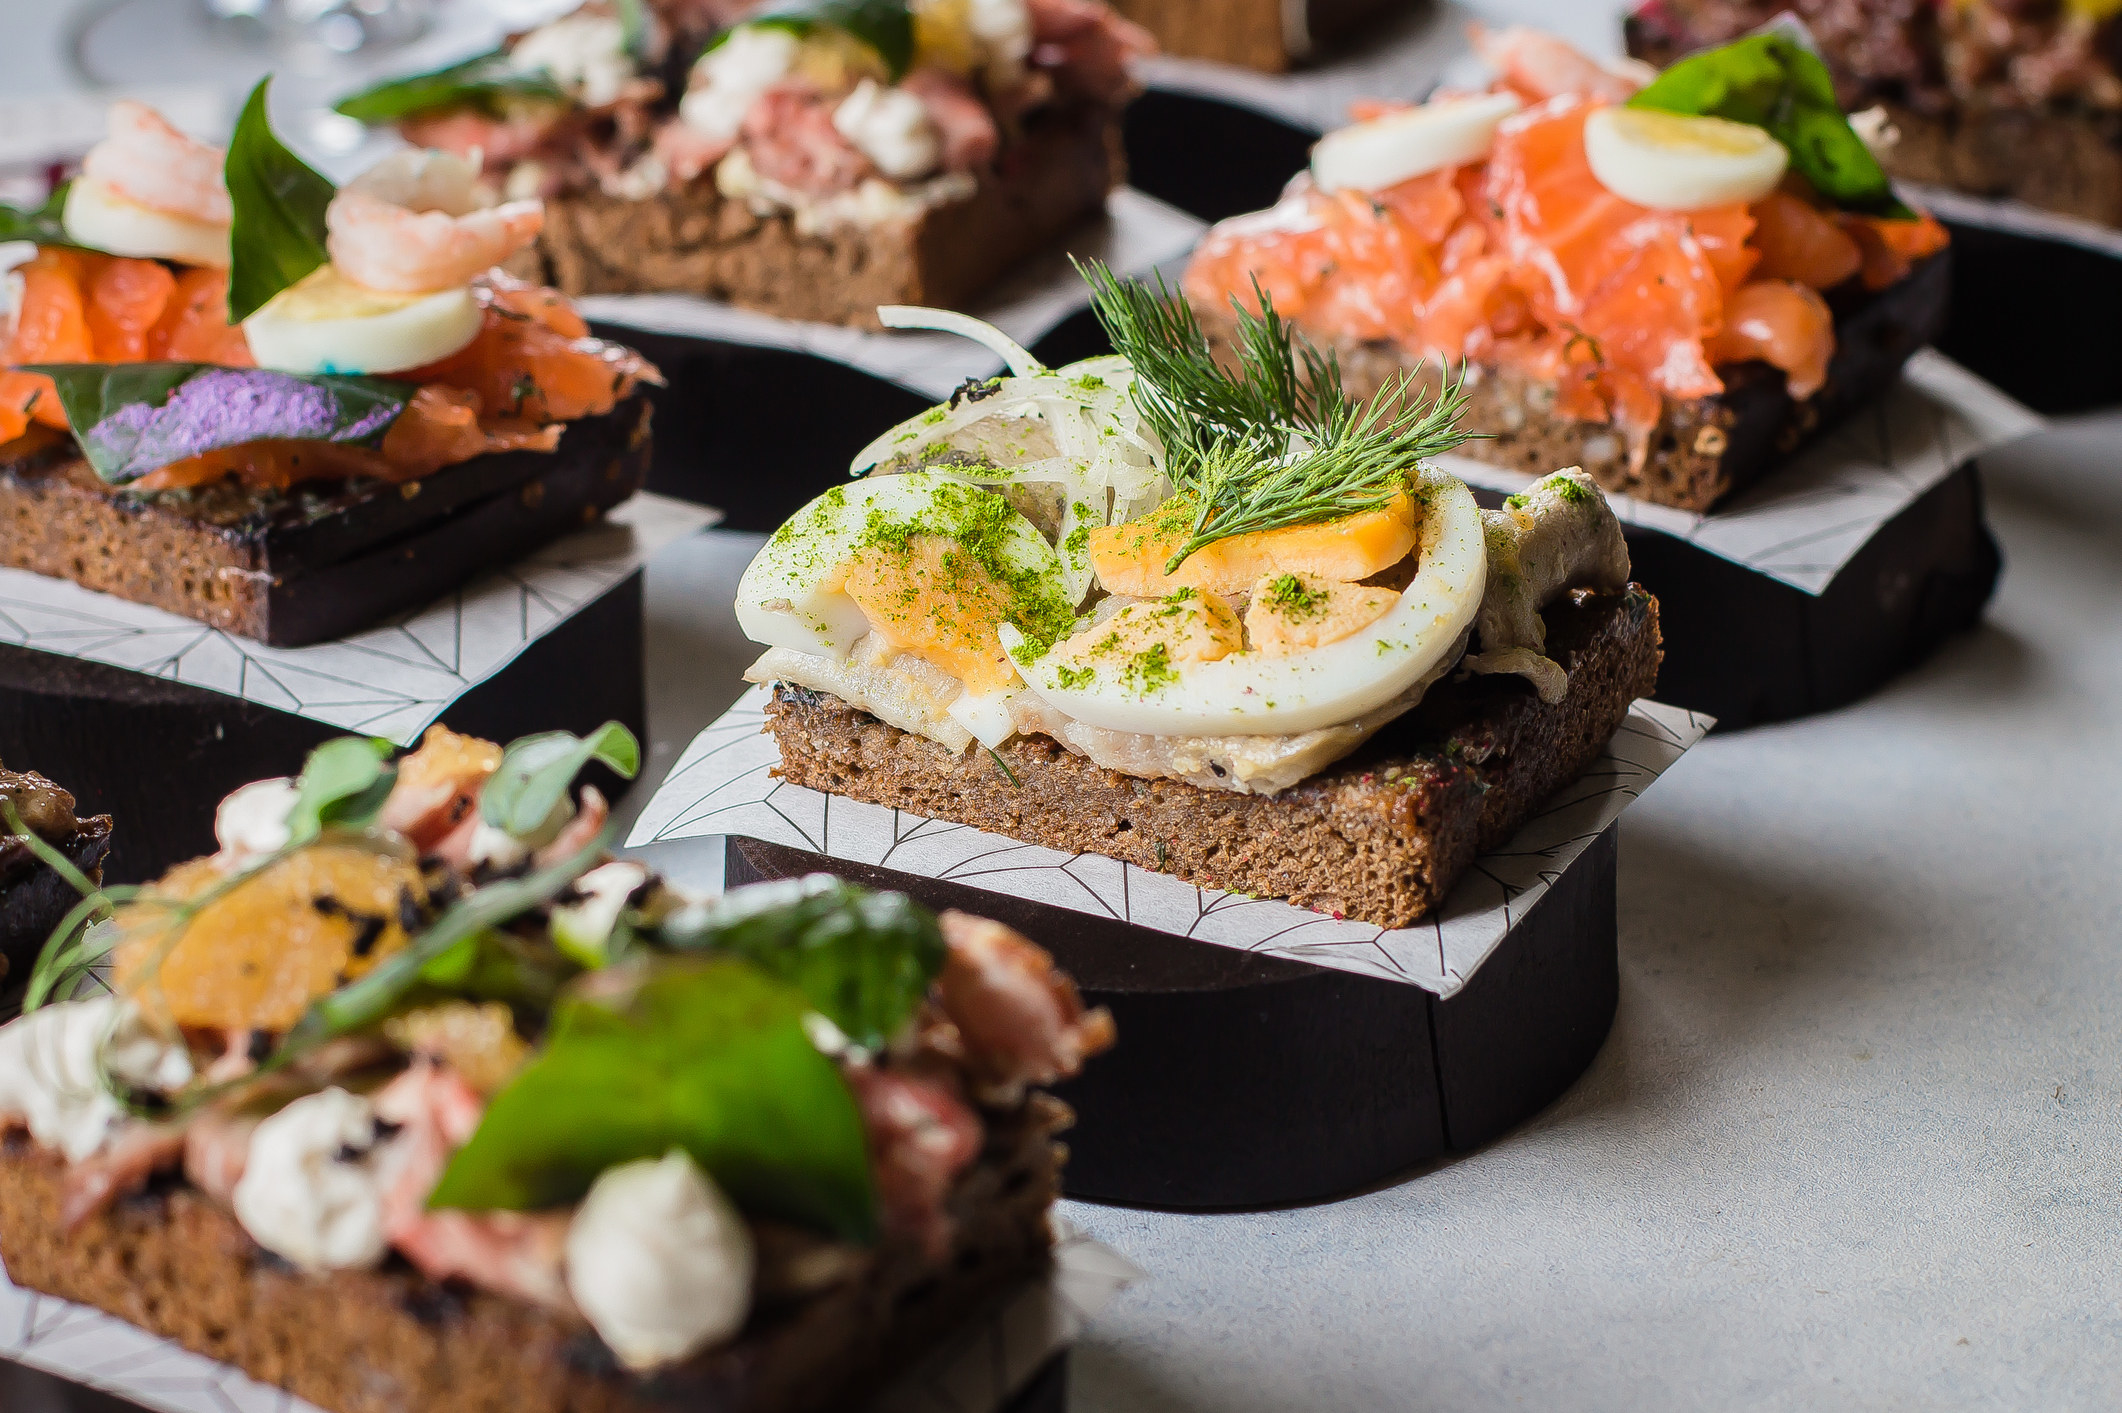 Traditional Danish open sandwiches, dark rye bread with different fresh toppings